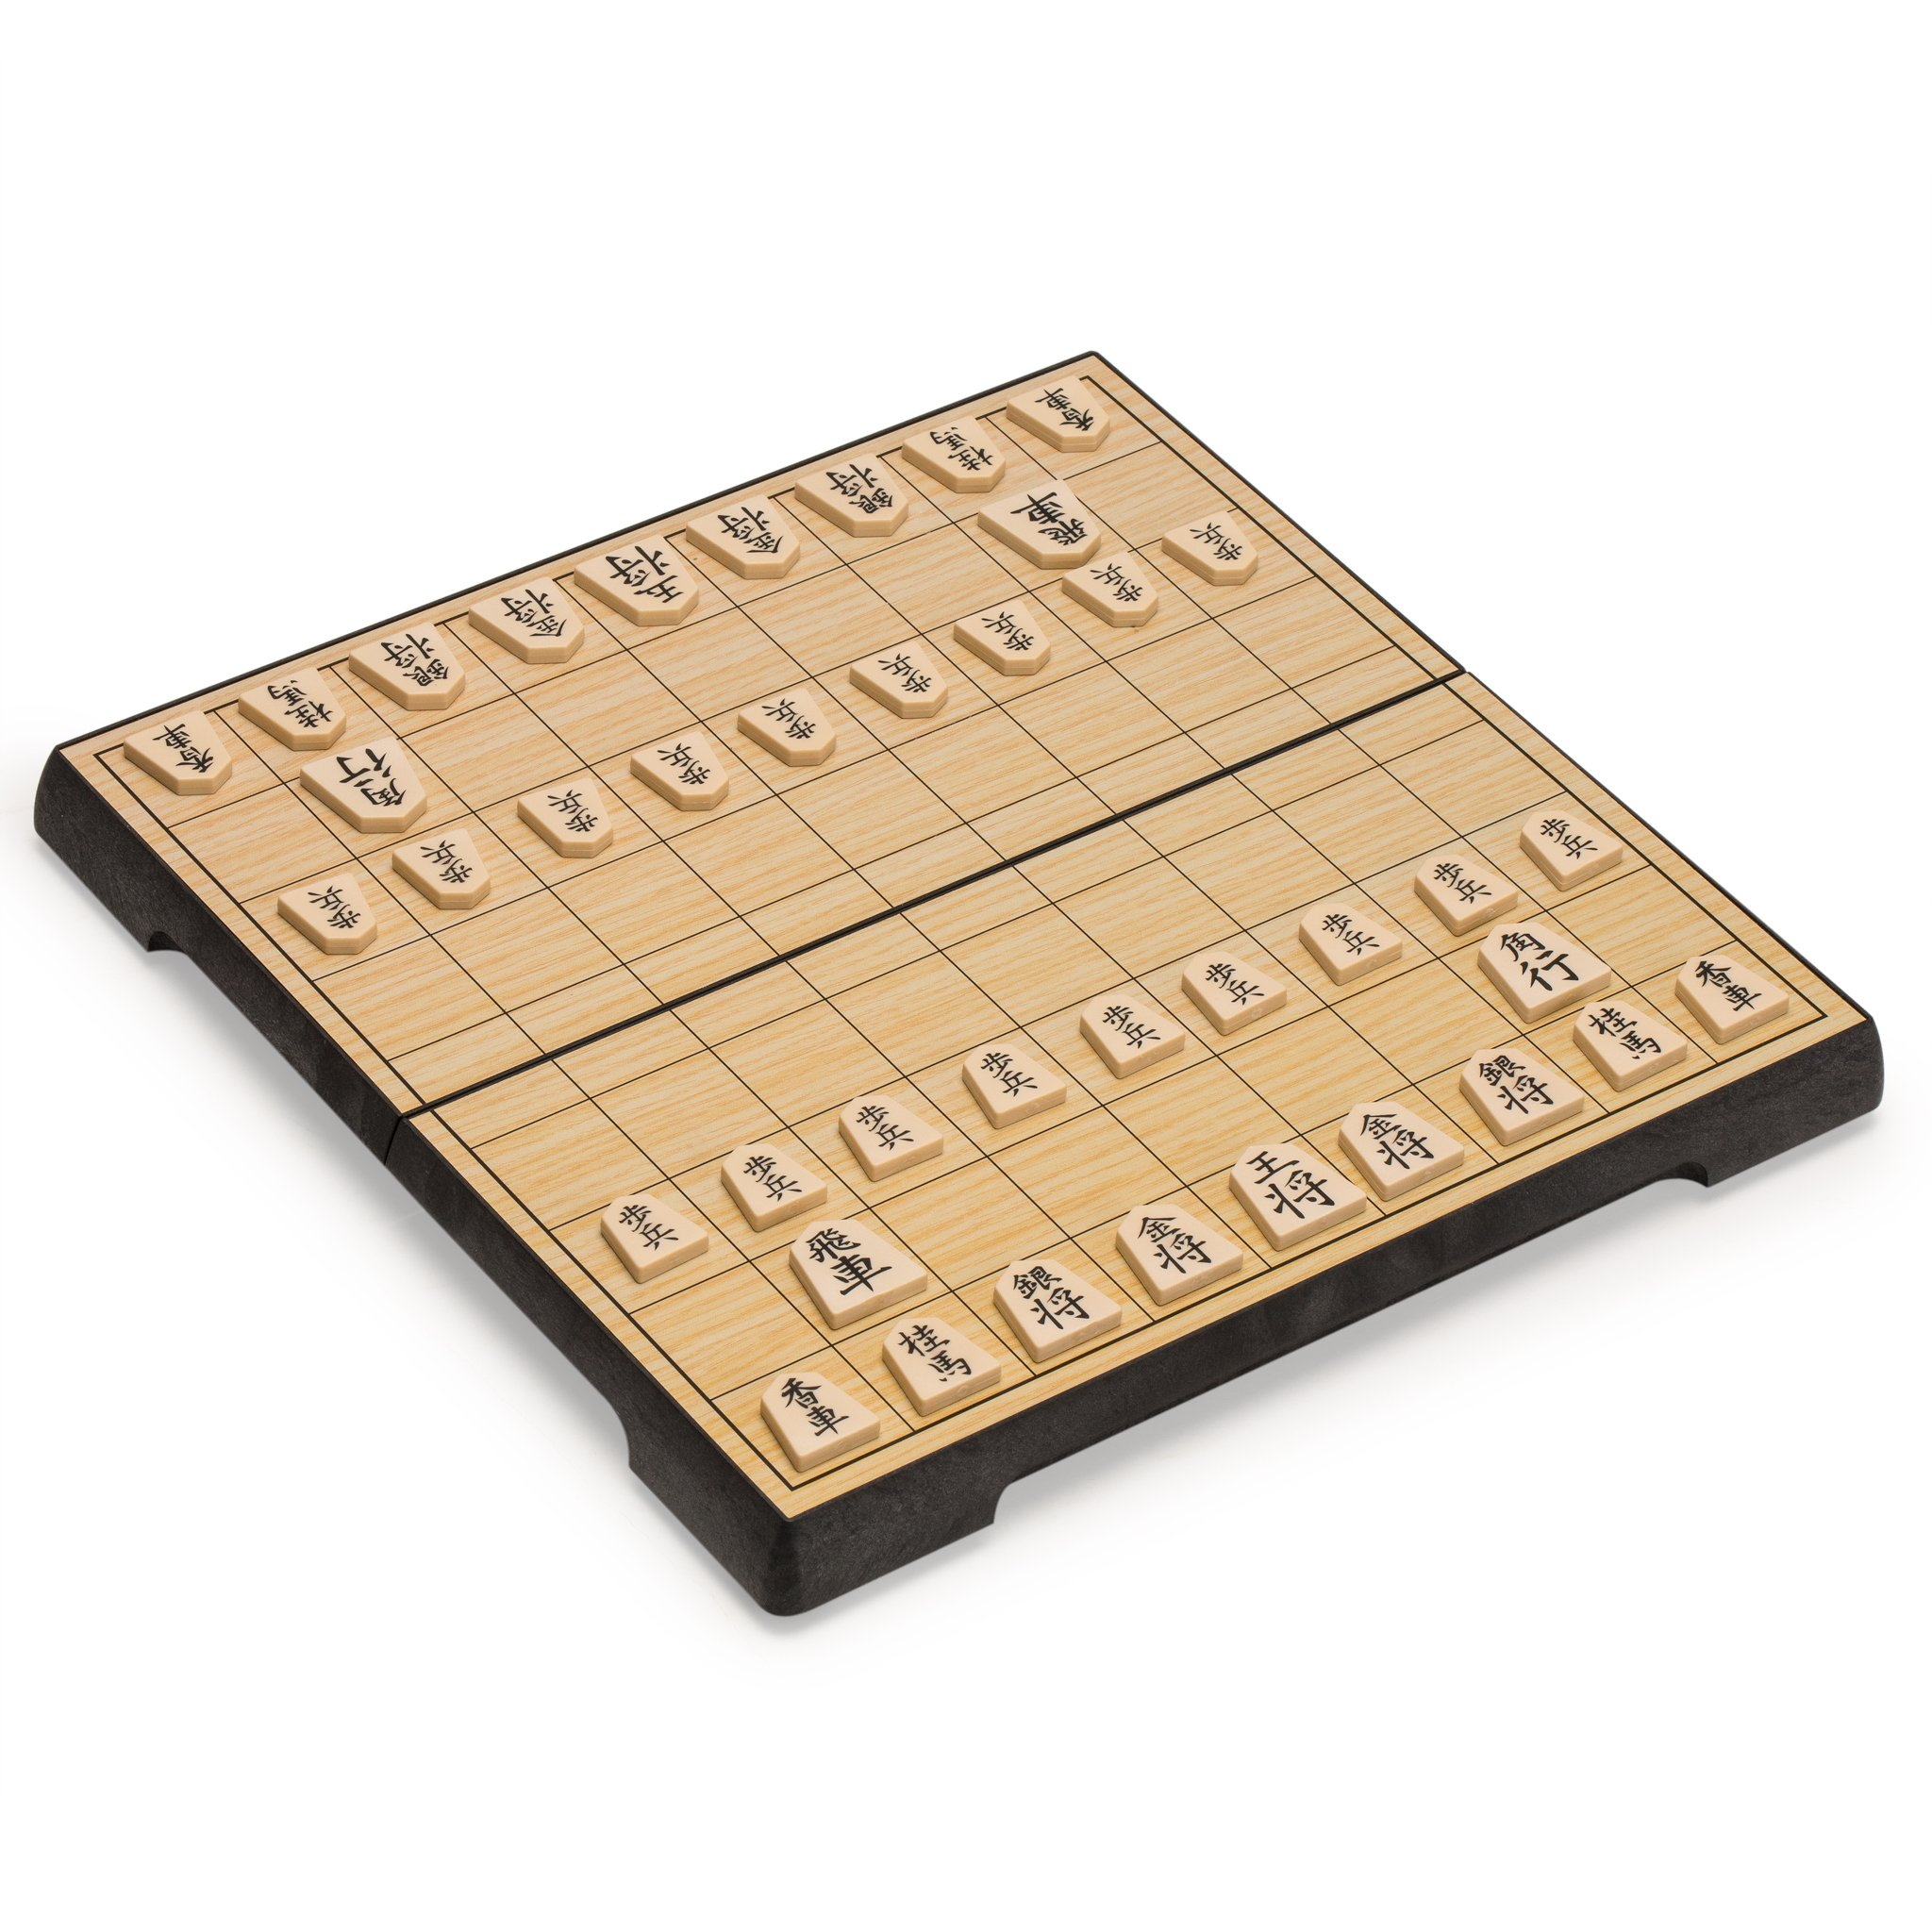 Shogi Travel Game Set with Magnetic 9.6 Inch Board and Game Pieces